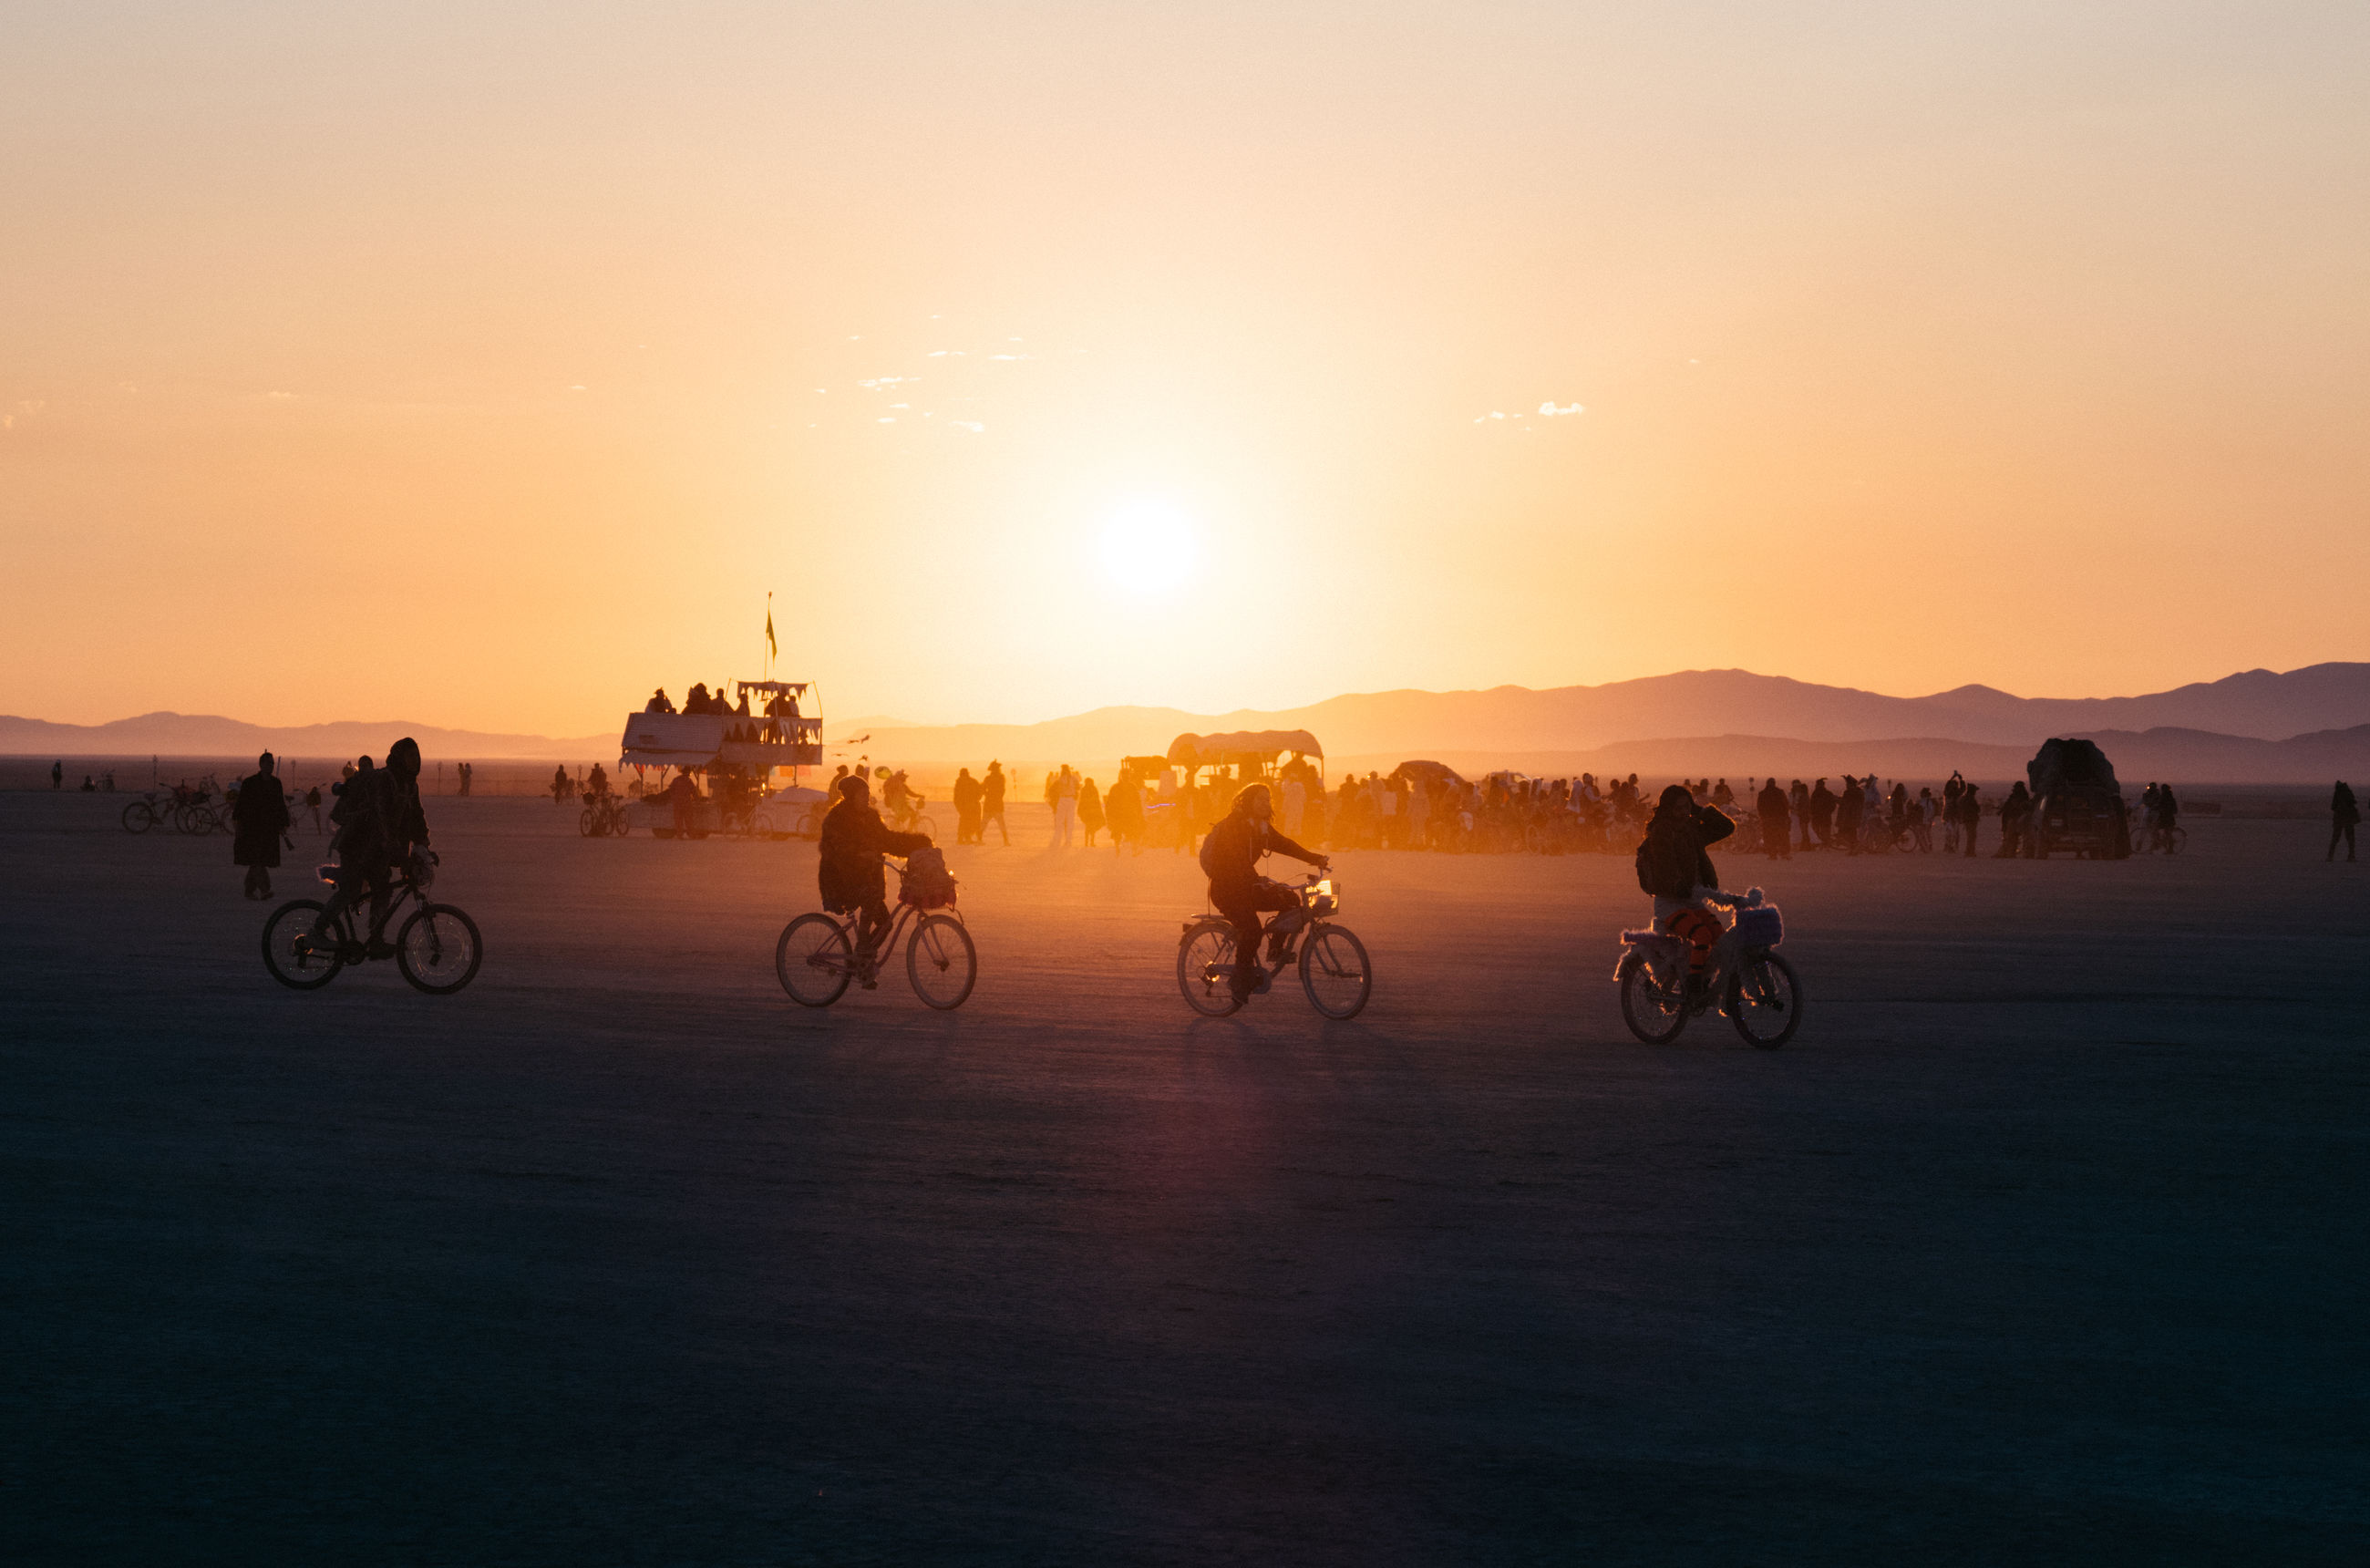 sunset, sky, transportation, beauty in nature, orange color, mode of transportation, real people, scenics - nature, group of people, sun, land vehicle, bicycle, sport, water, nature, riding, ride, lifestyles, travel, silhouette, outdoors